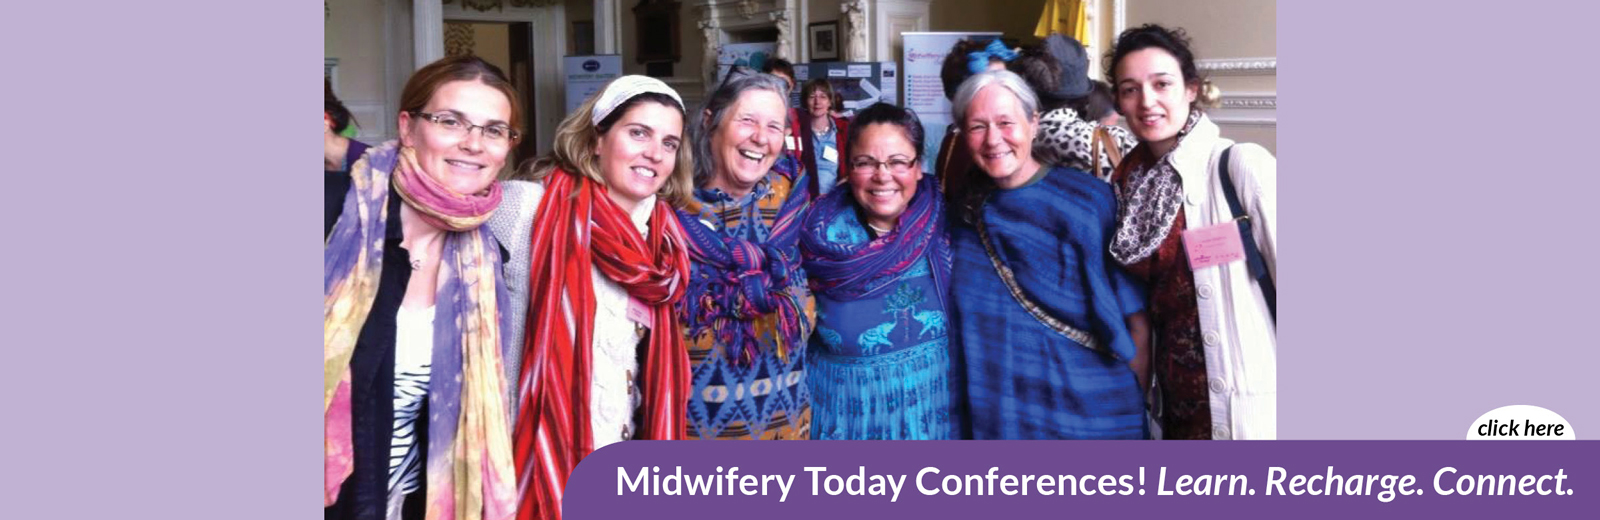 Midwifery Today Conferences